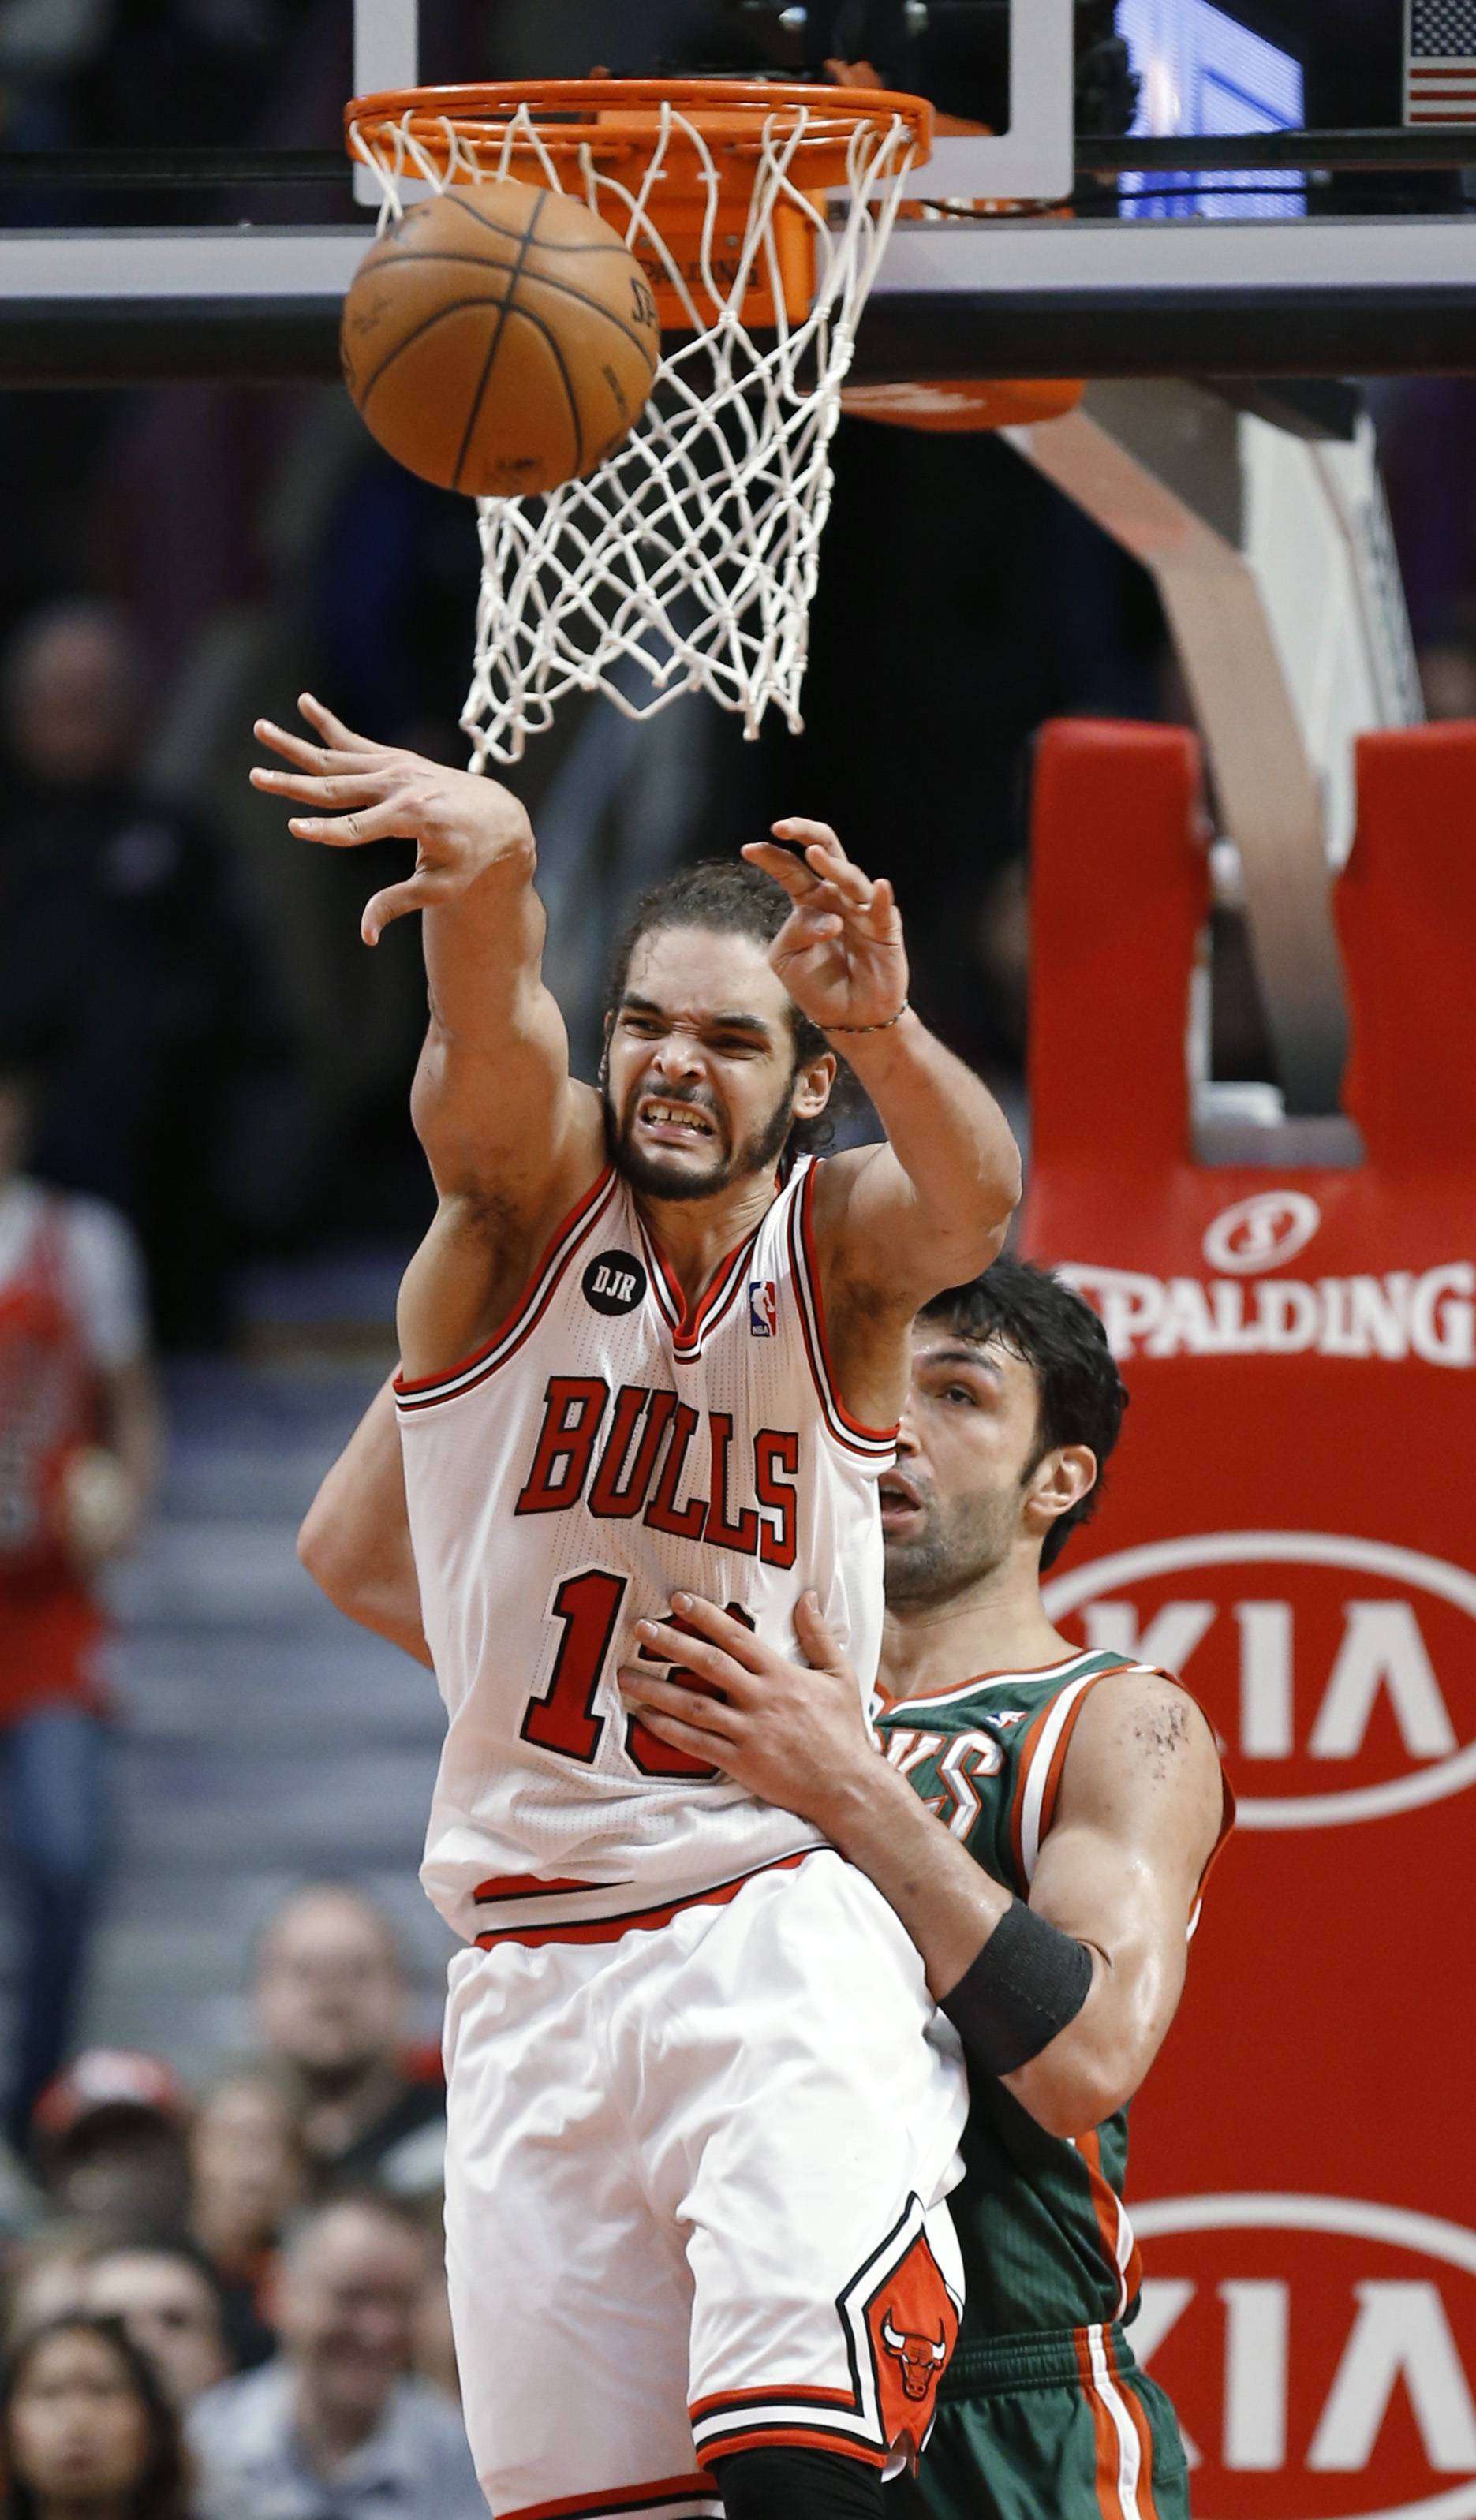 The Bulls' Joakim Noah fires an outlet pass under pressure from Zaza Pachulia of the Bucks on Friday night at the United Center.